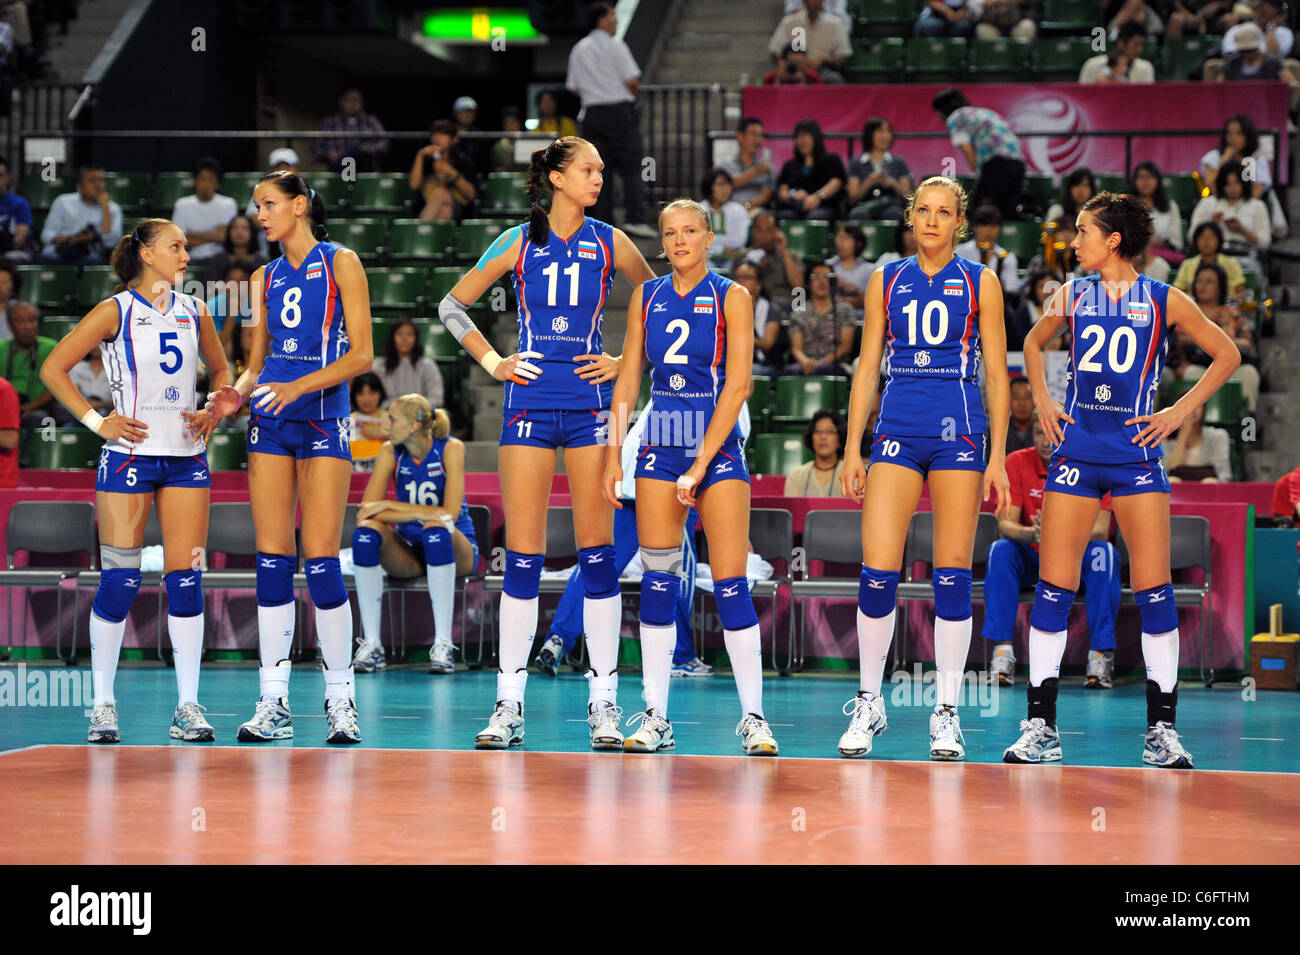 russian womens volleyball Russian volleyball women 36,318 likes 85 talking about this the only one online page for russian volleyball women with official news, photos, videos.